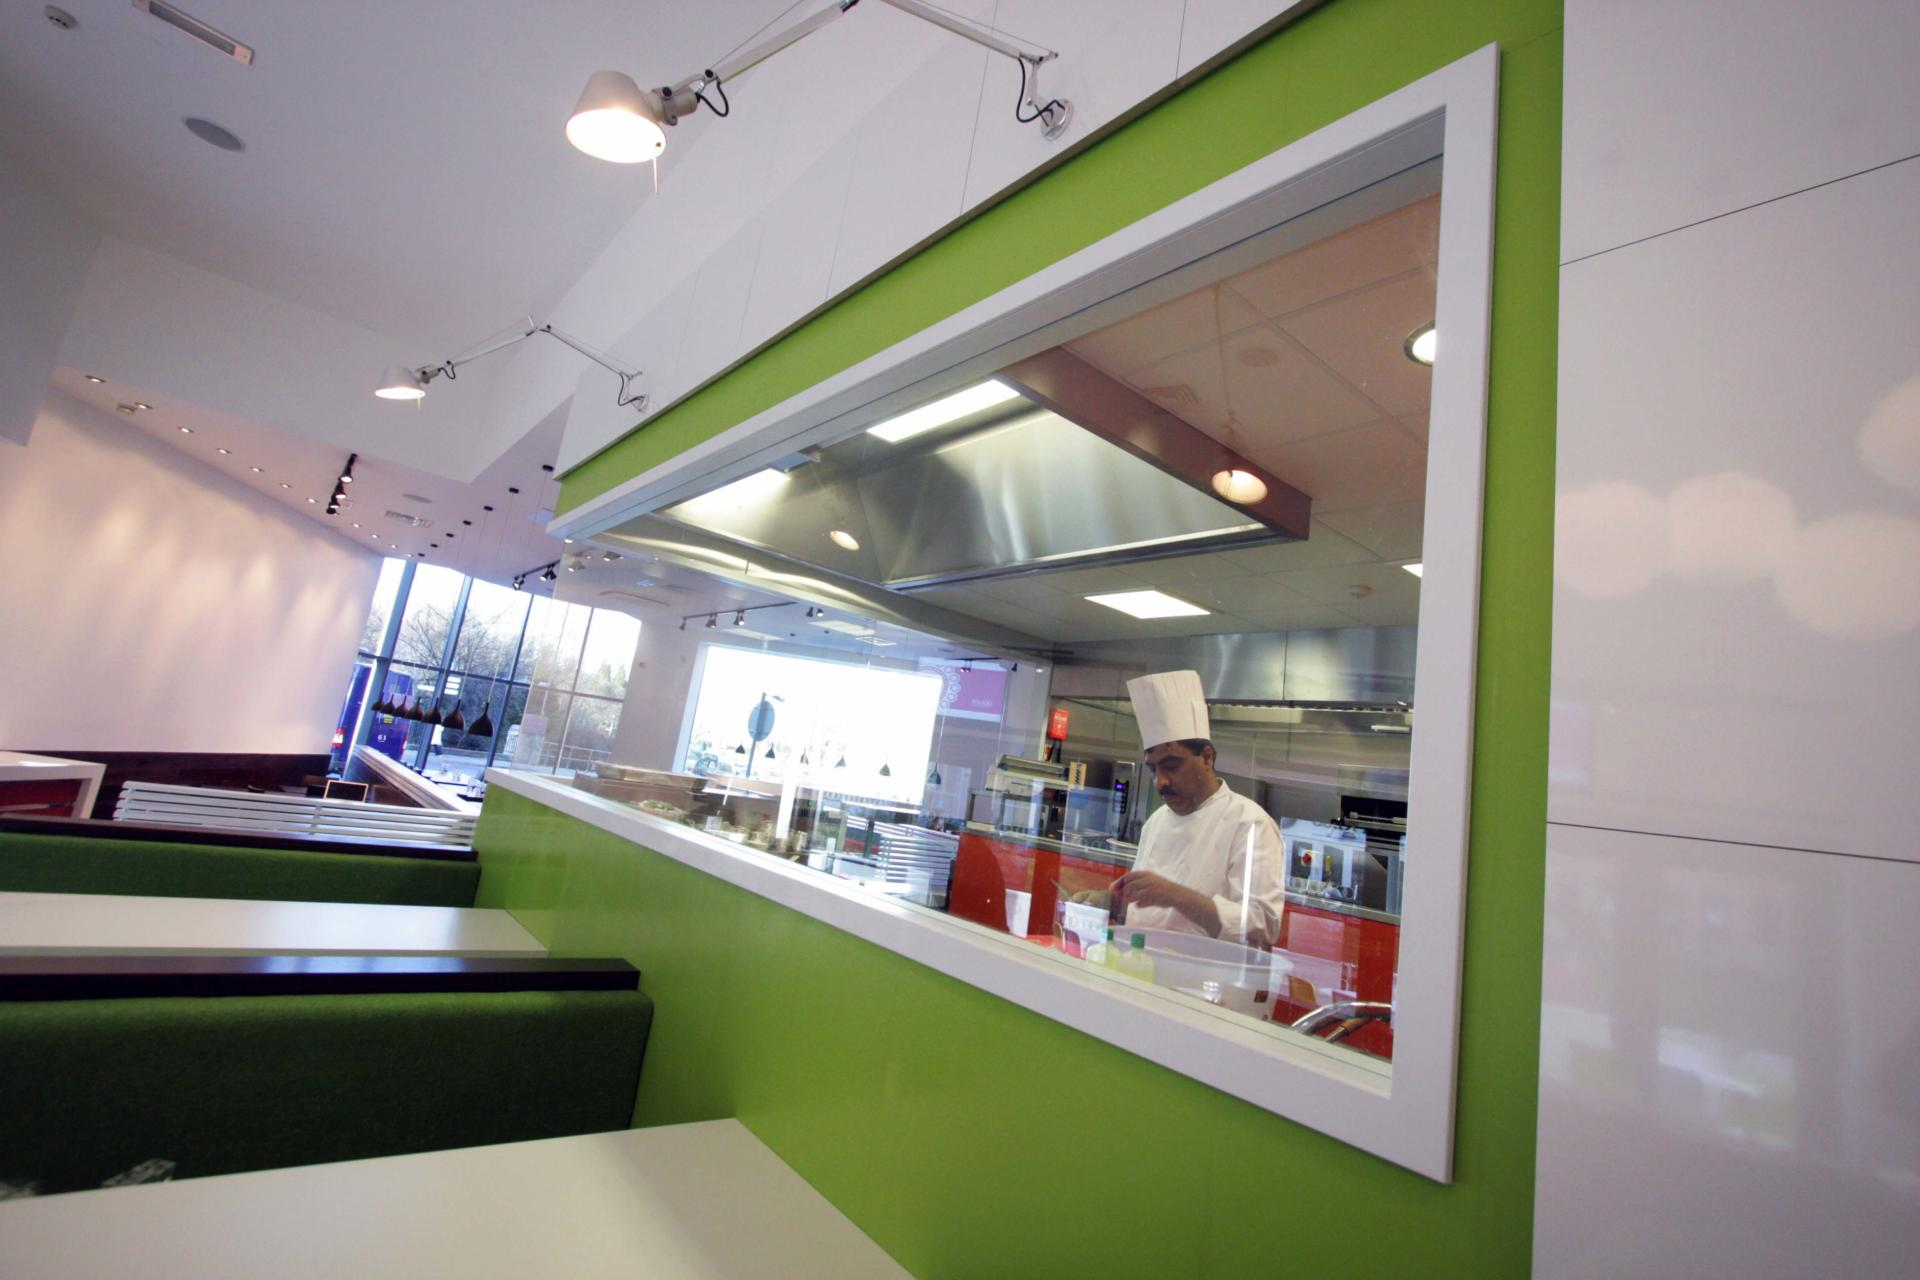 Oojam-Hemel-Hempstead-Indian-restaurant-and-kitchenFabrication-Stainless-Steel-Commercial-Kitchen-spacecatering_8